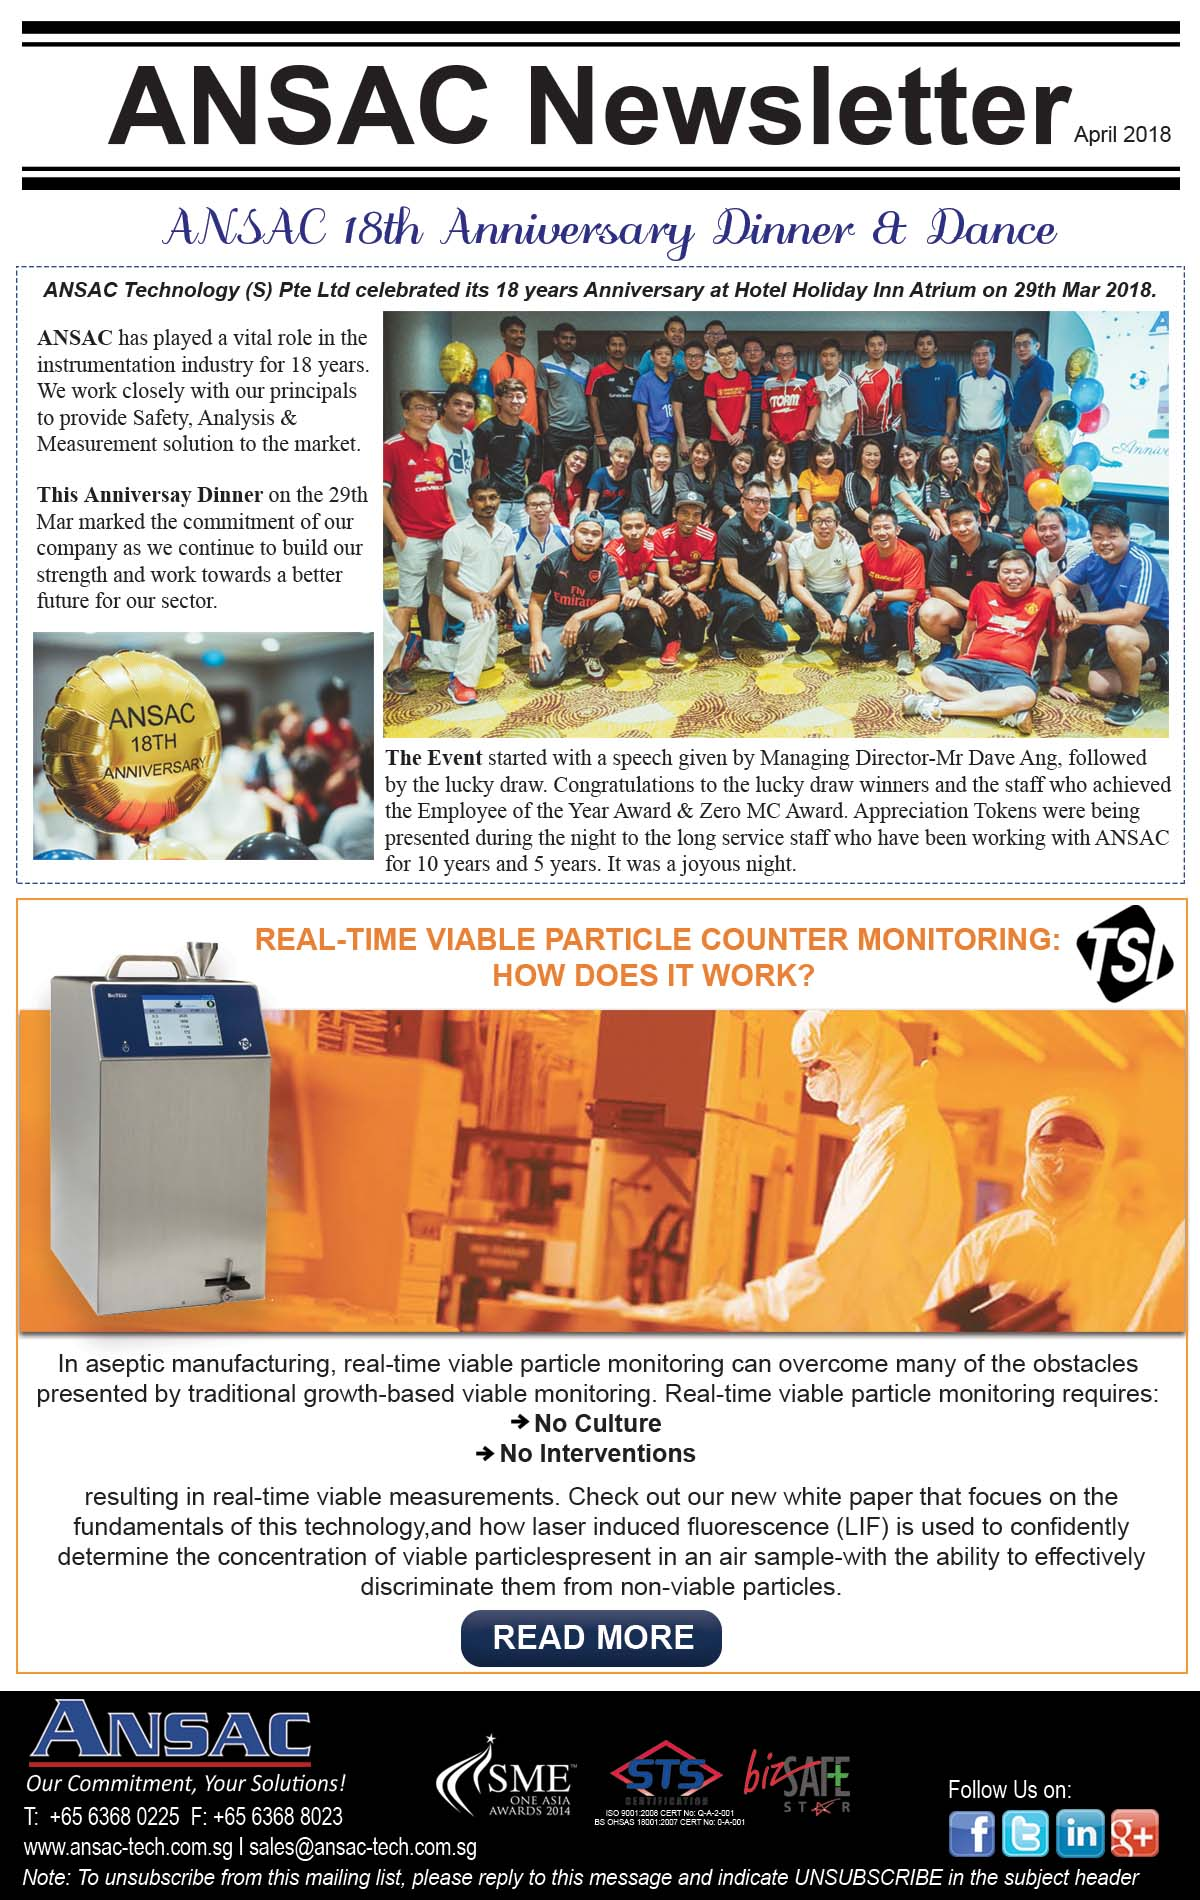 "ANSAC Newsletter-""18th Anniversary Dinner & Dance"" & How Does TSI Real Time Viable Particle Counter Work?"